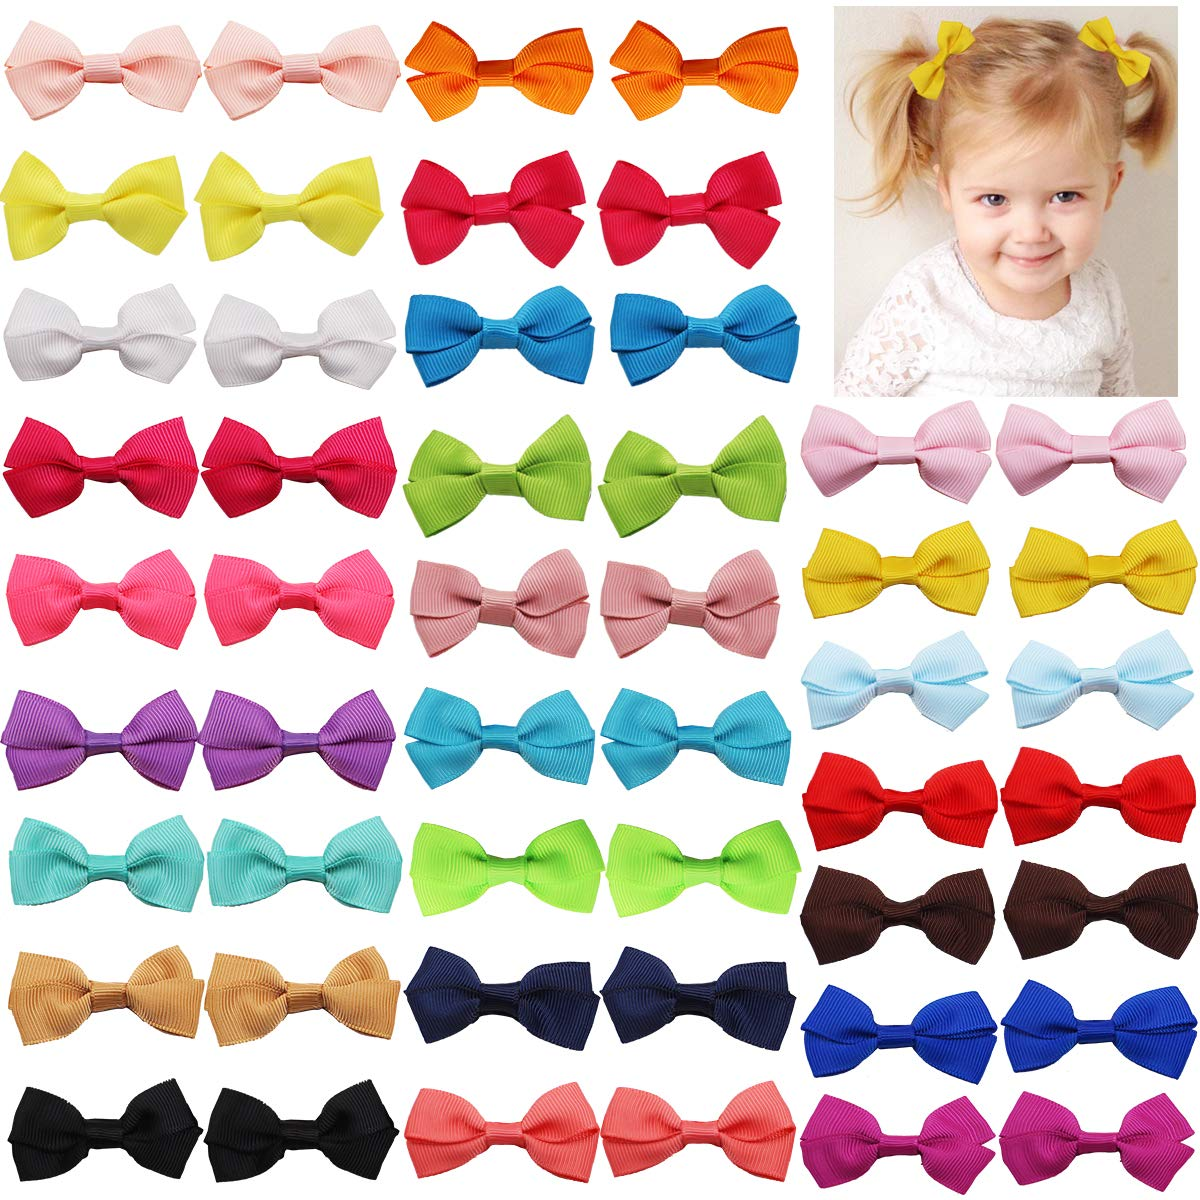 50PCS Ranking TOP7 Tiny Baby Girls Hair Bows 2 Inch Wit 2021 autumn and winter new Ribbon Grosgrain